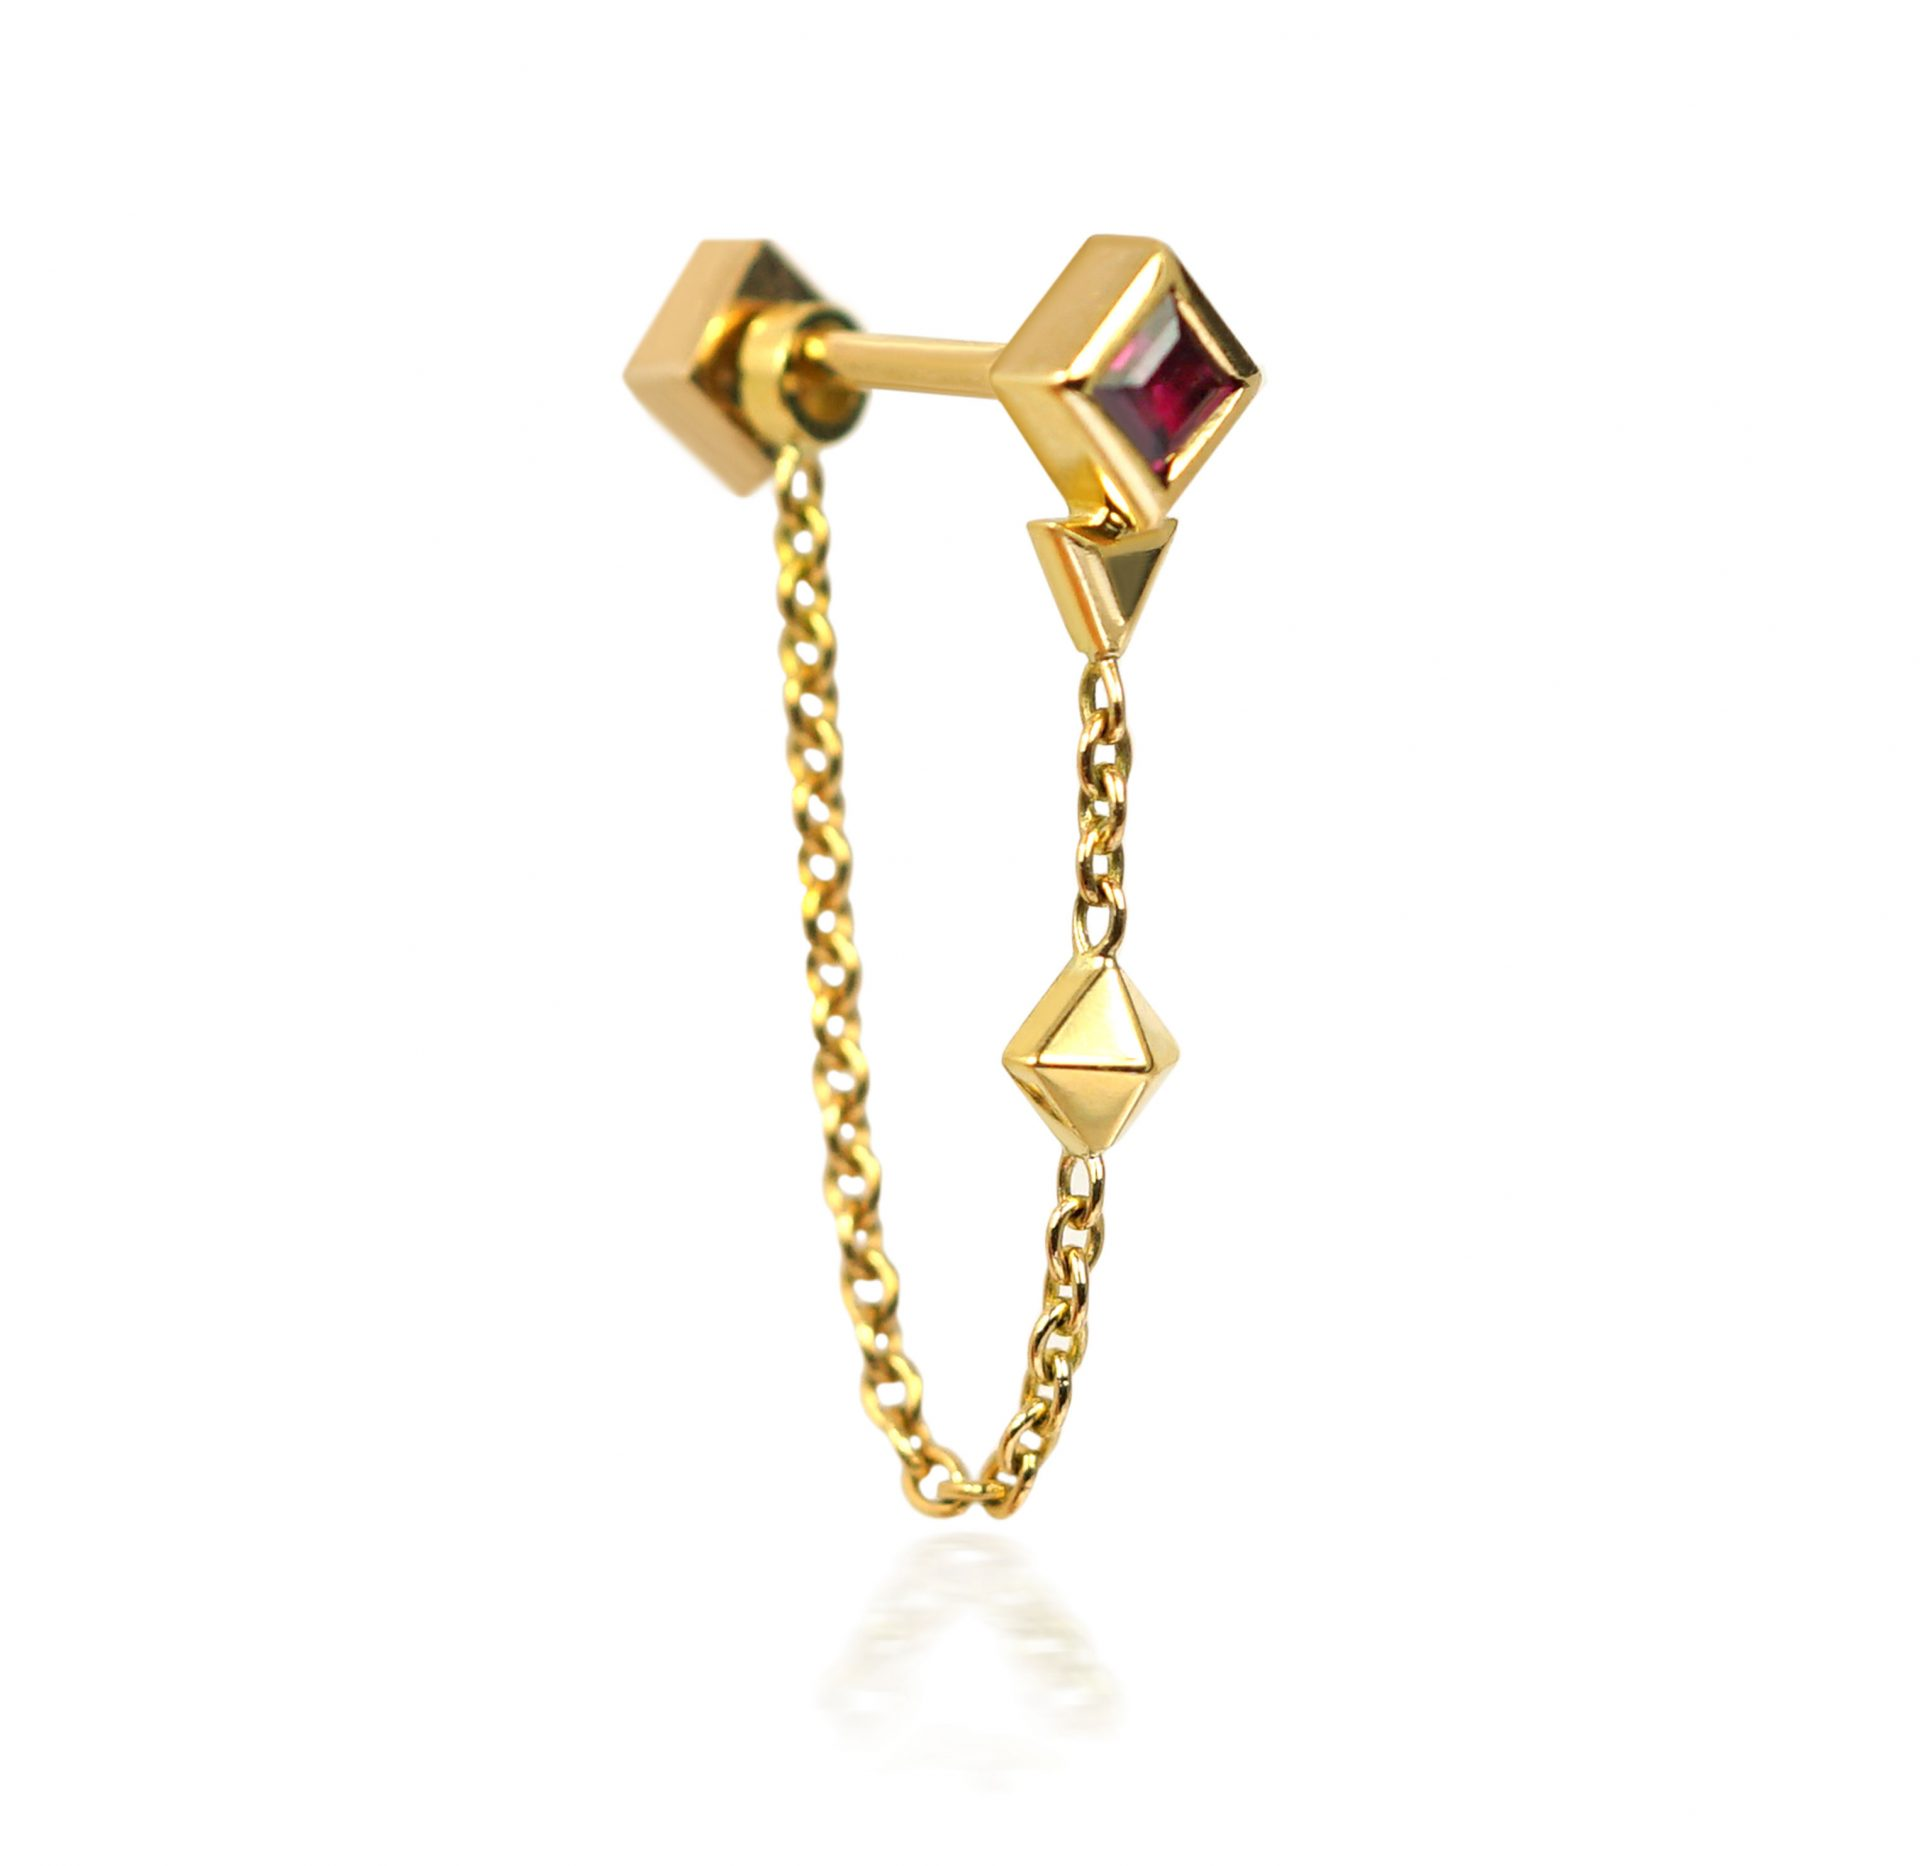 Red-Ruby-Sagittarius-Jewellery-Earring-Birthday-Gift-Sagittarius-18k-Solid-Gold-Cartilage-Piercings-Astrology-Sign-Lena-Cohen-British-Designer